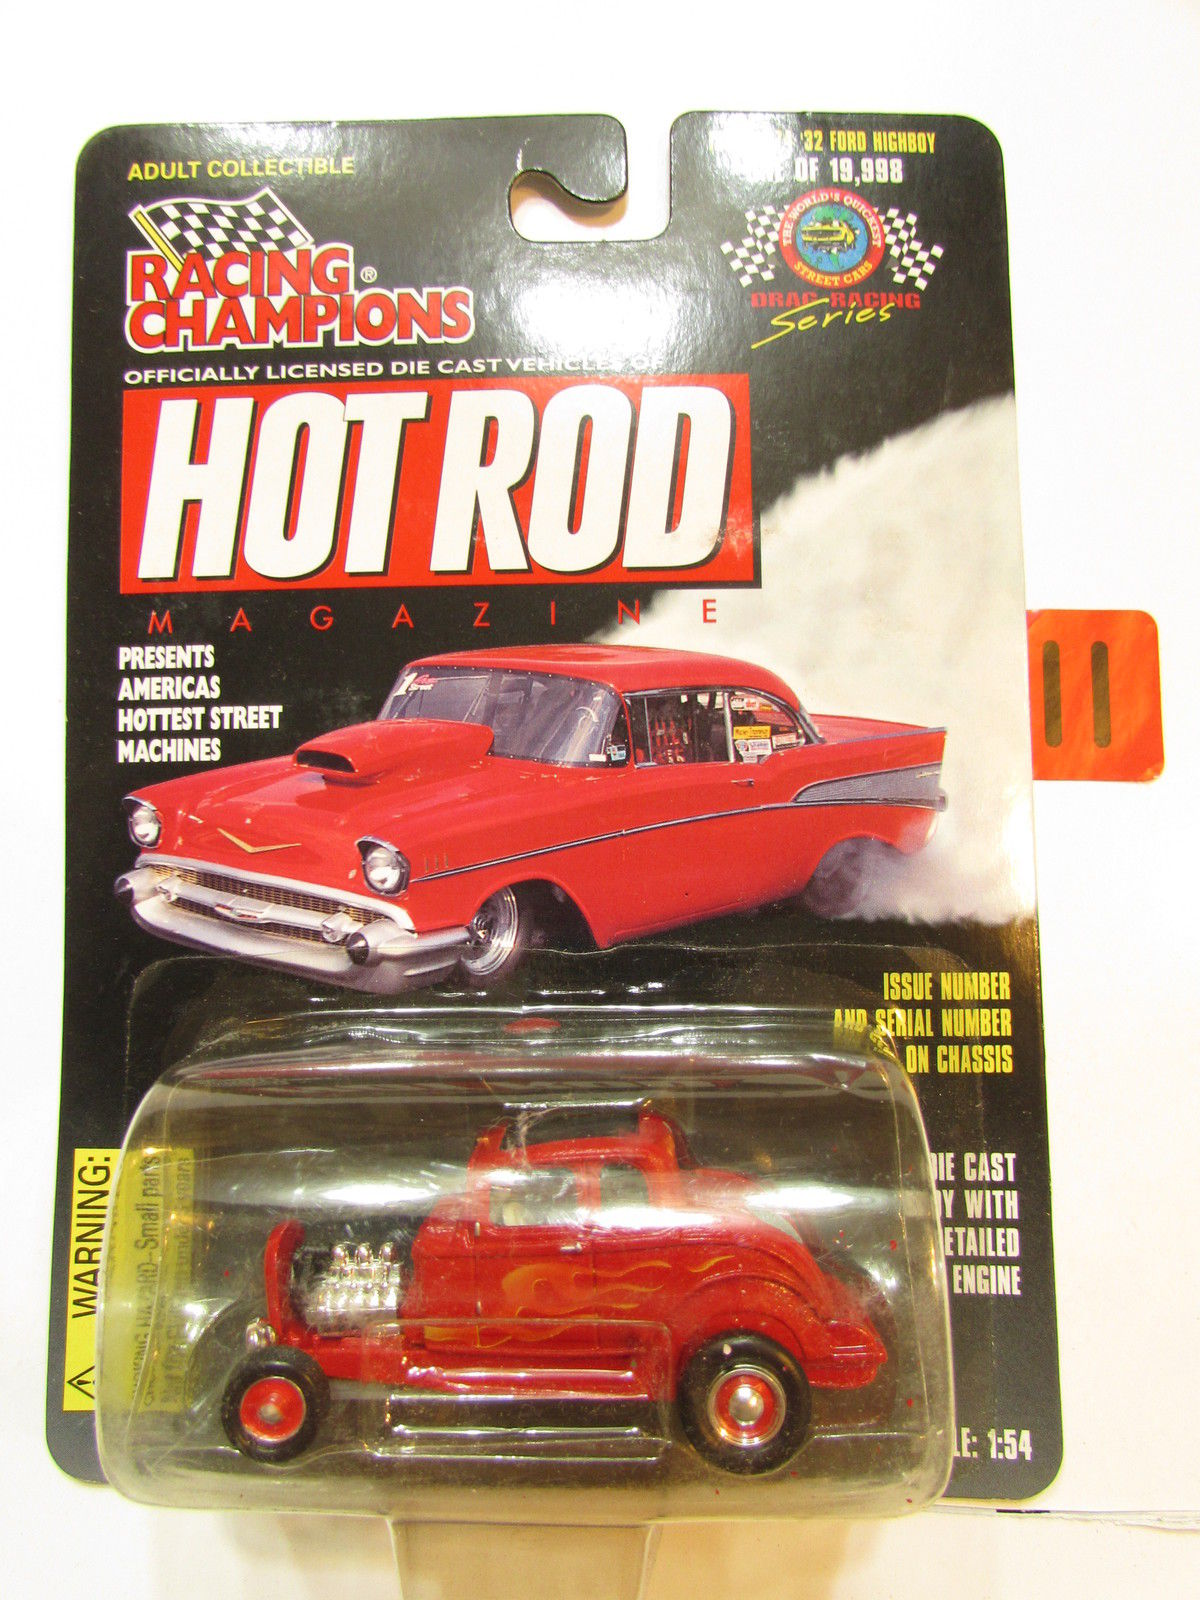 RACING CHAMPIONS HOT ROD ISSUE #74 - '32 FORD HIGHBOY 1:54 SCALE